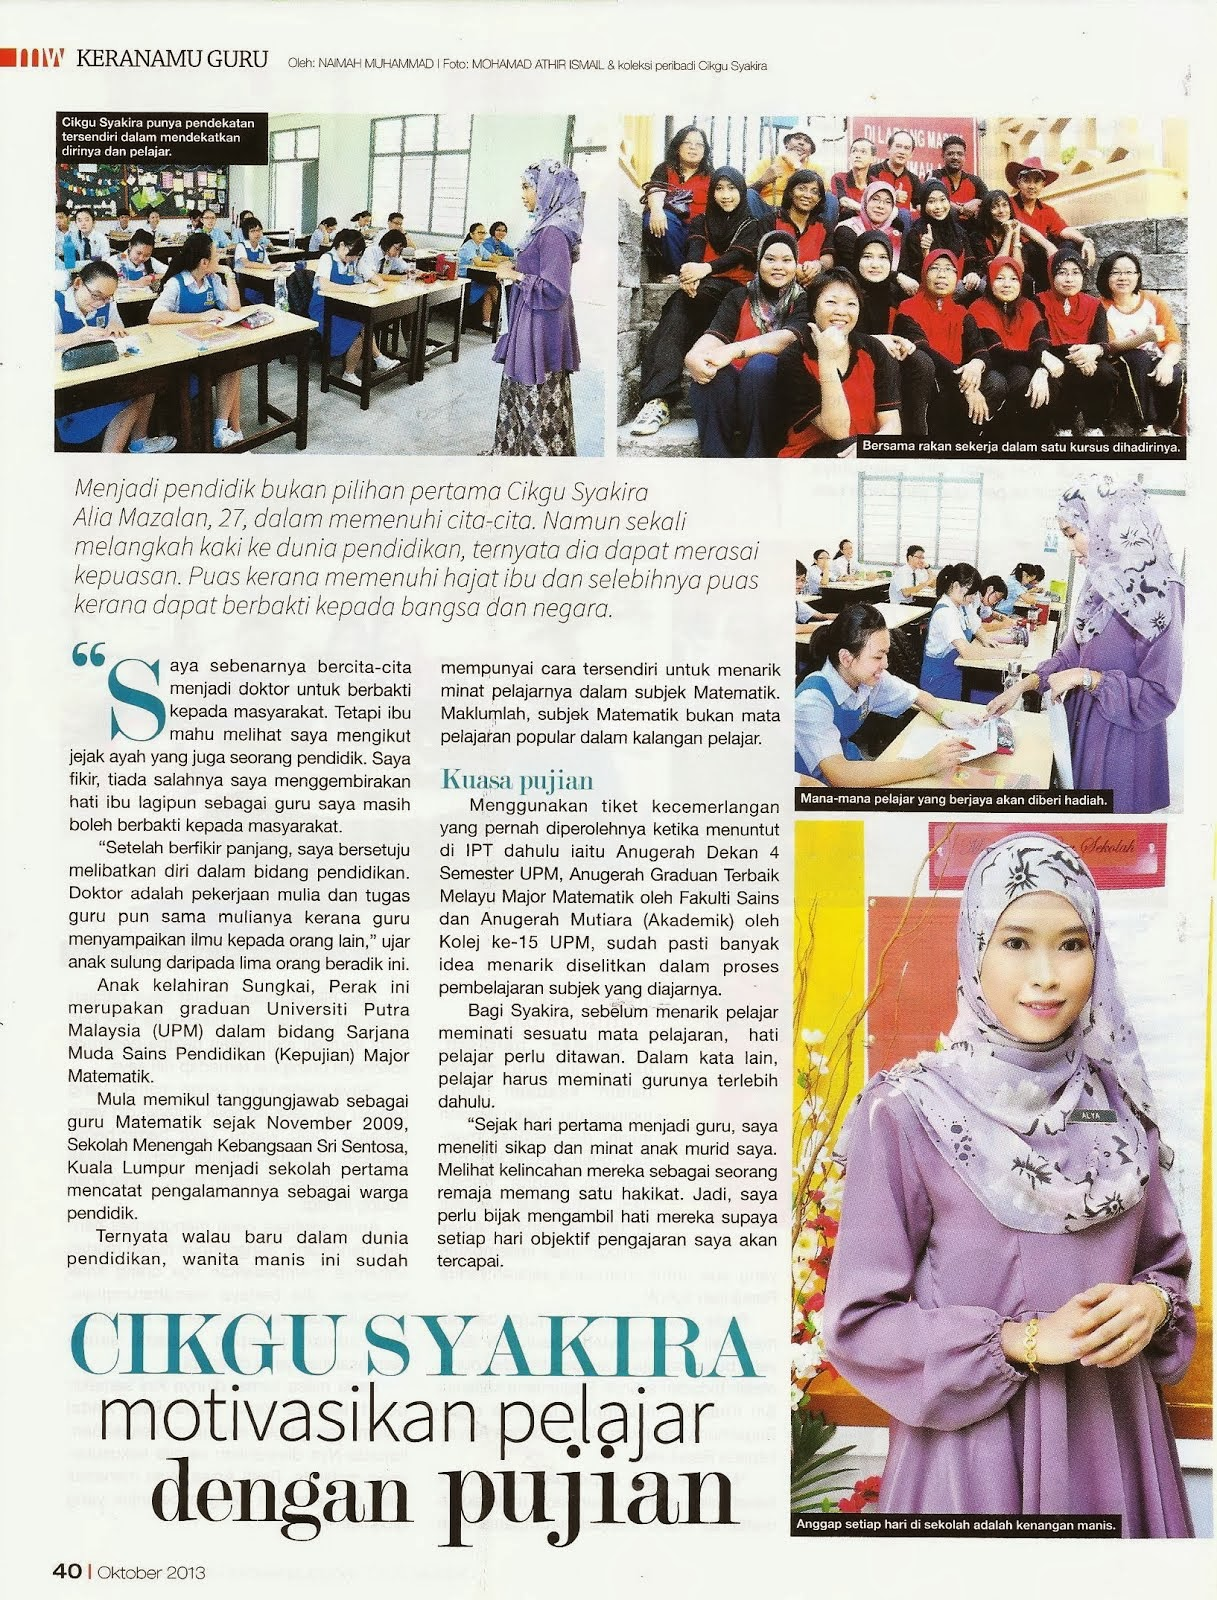 FEATURED in MINGGUAN WANITA (4-10 Okt 2013)